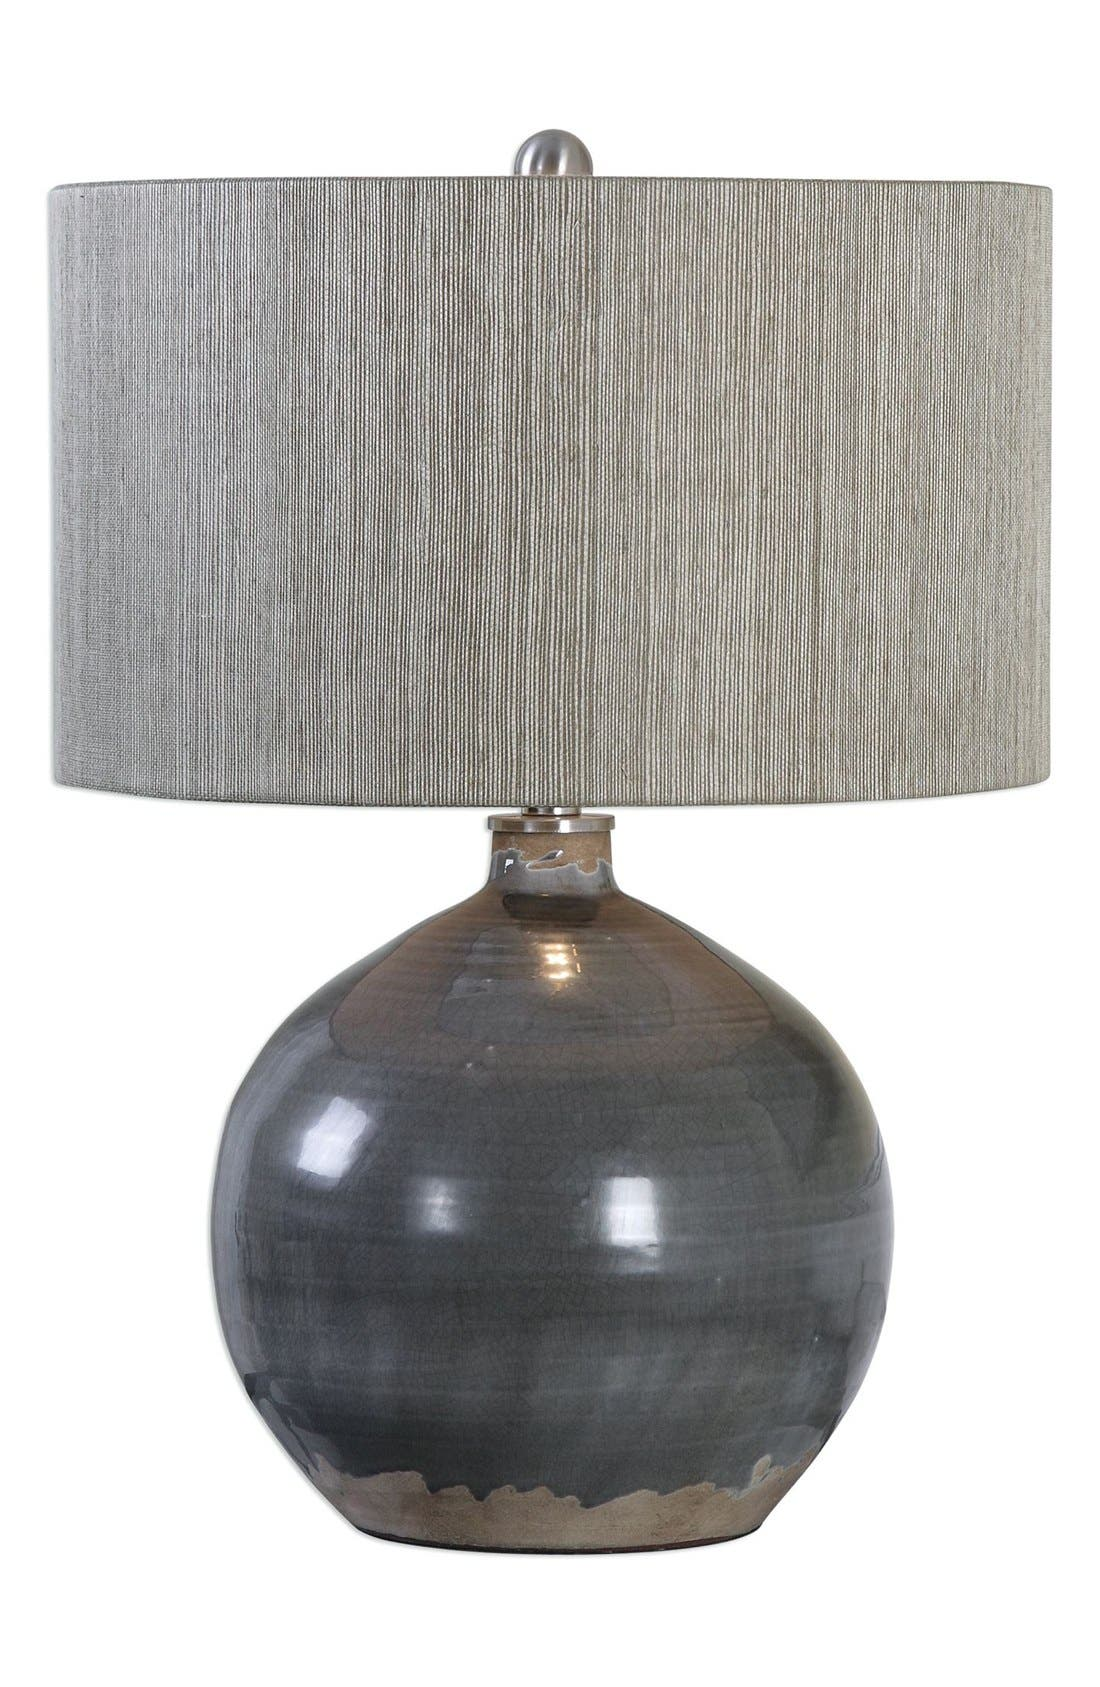 Main Image - Uttermost Ceramic Table Lamp